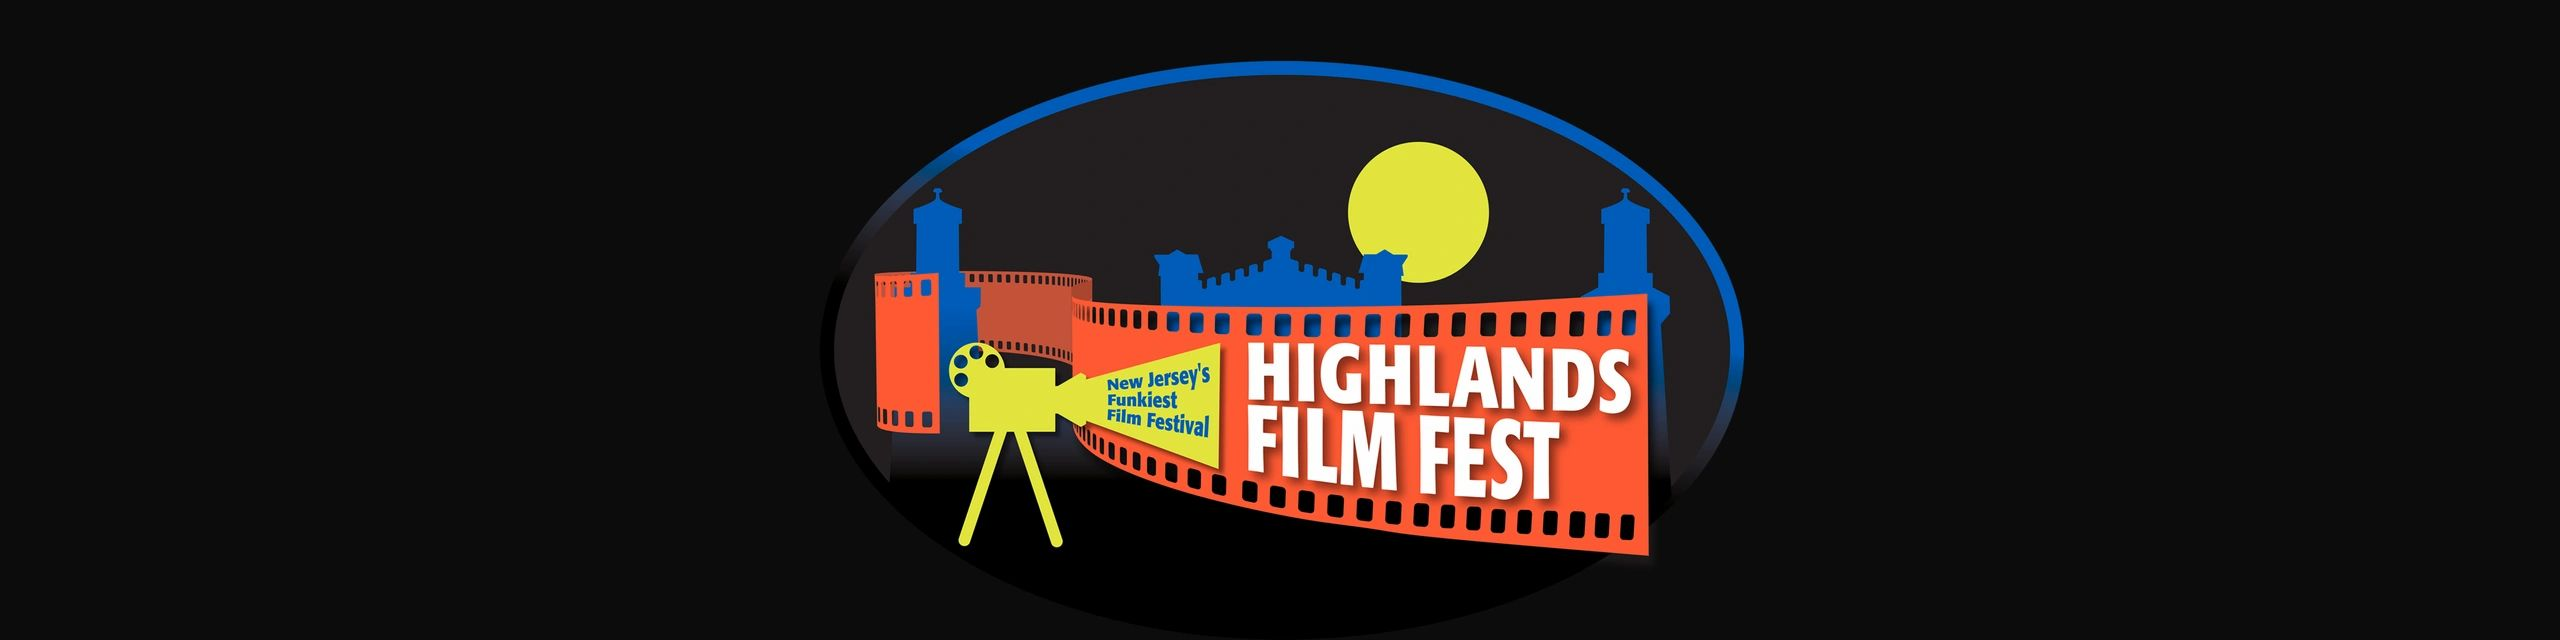 Highlands Film Fest official logo incorporating the Navesink Twin Lights Lighthouse